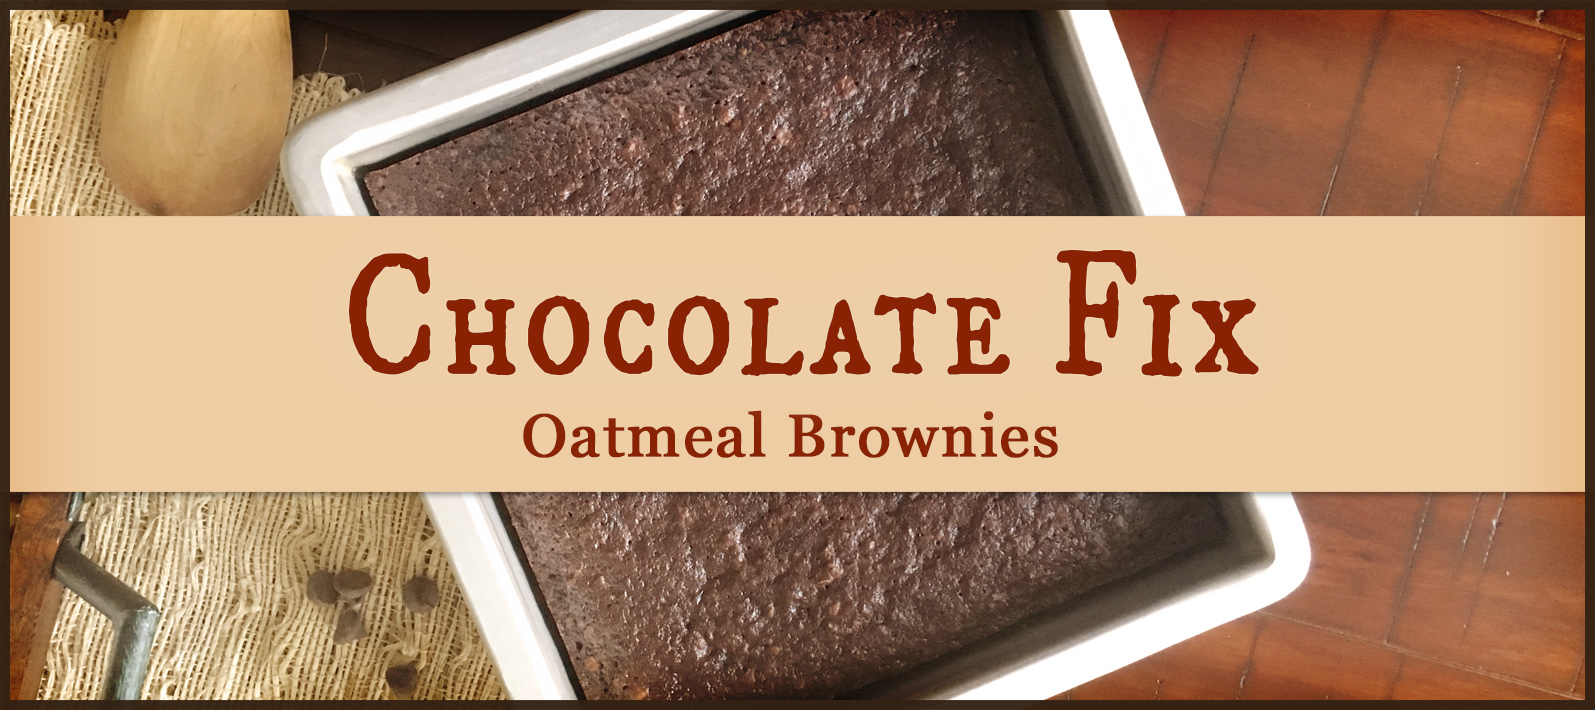 Brownies are a traditional go-to treat, and why not? One bowl, a few minutes of prep, and then the delicious and mouth-watering scent of chocolatey goodness baking in the oven. Break out the bowl and get your chocolate on with these Oatmeal Brownies!